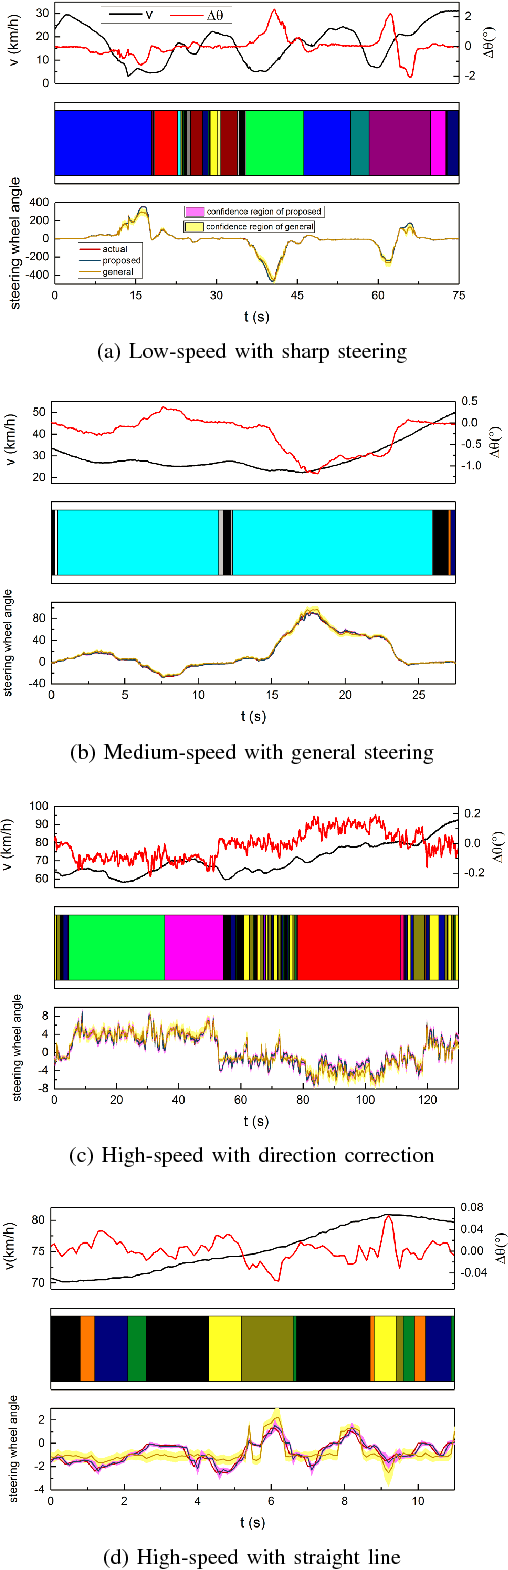 Figure 2 for Learning and Generalizing Motion Primitives from Driving Data for Path-Tracking Applications